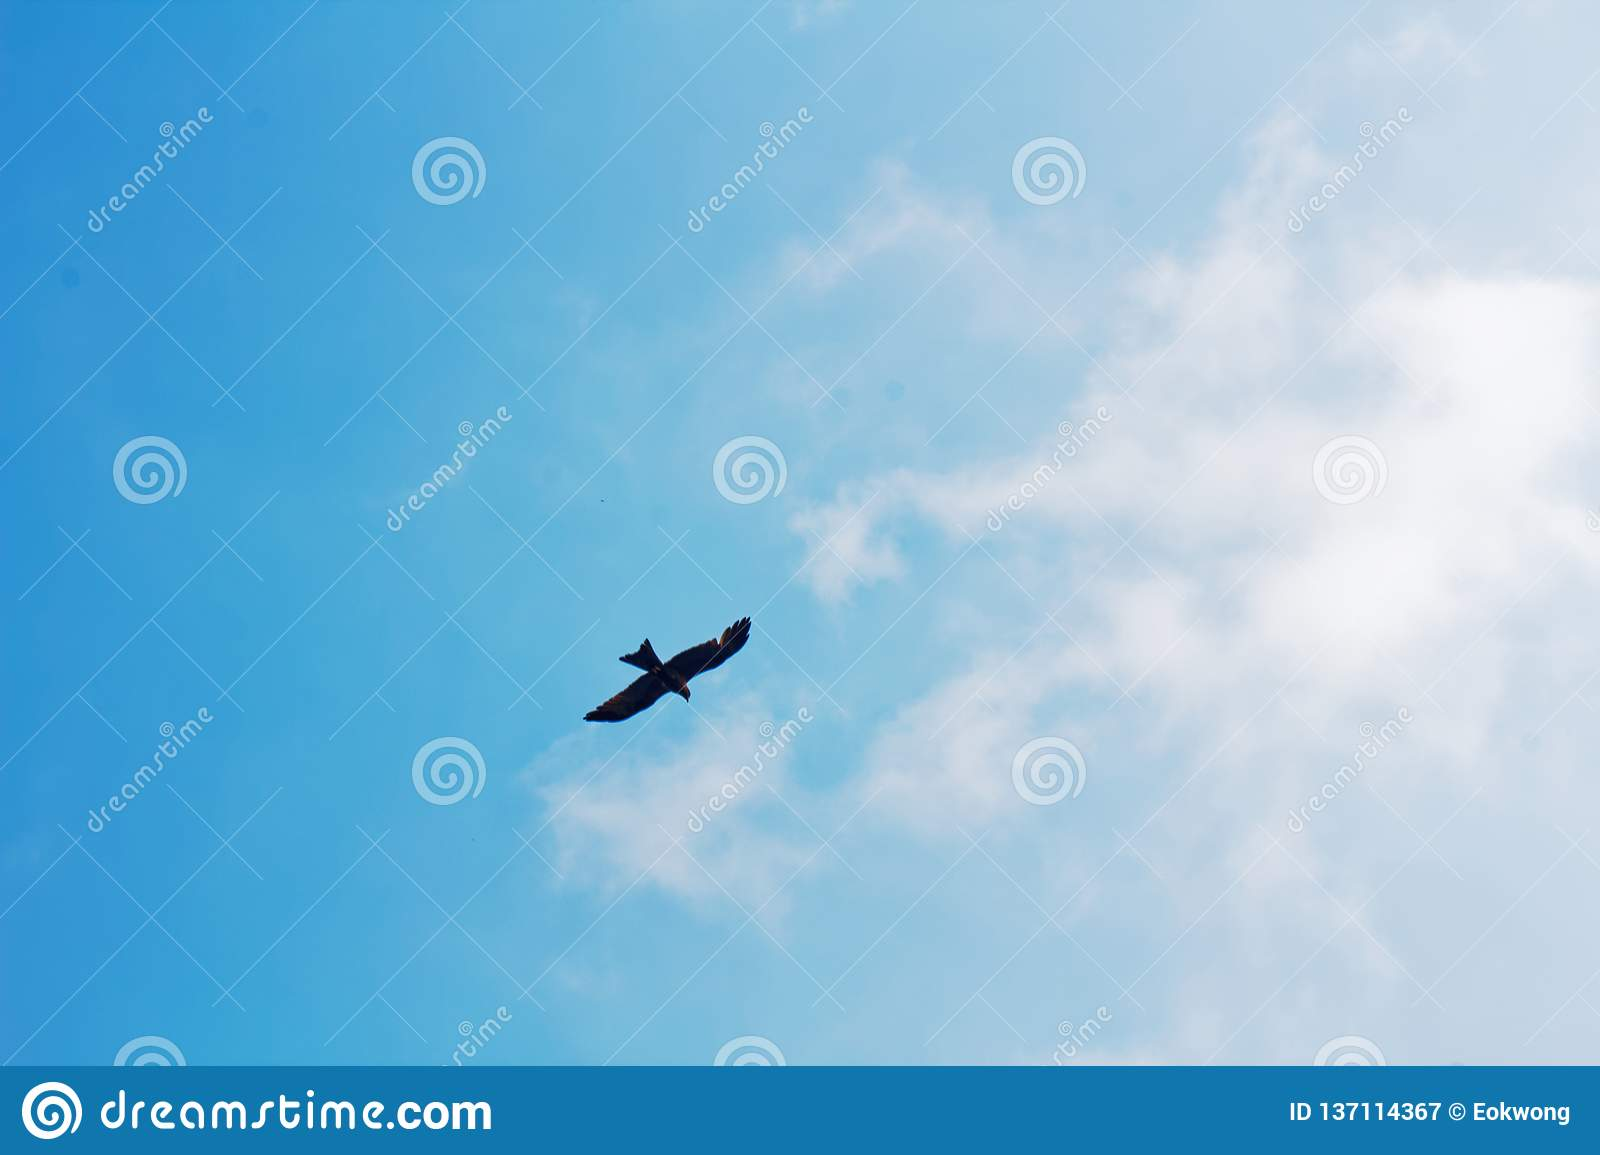 Bird flying, soaring in the sky, nice weather